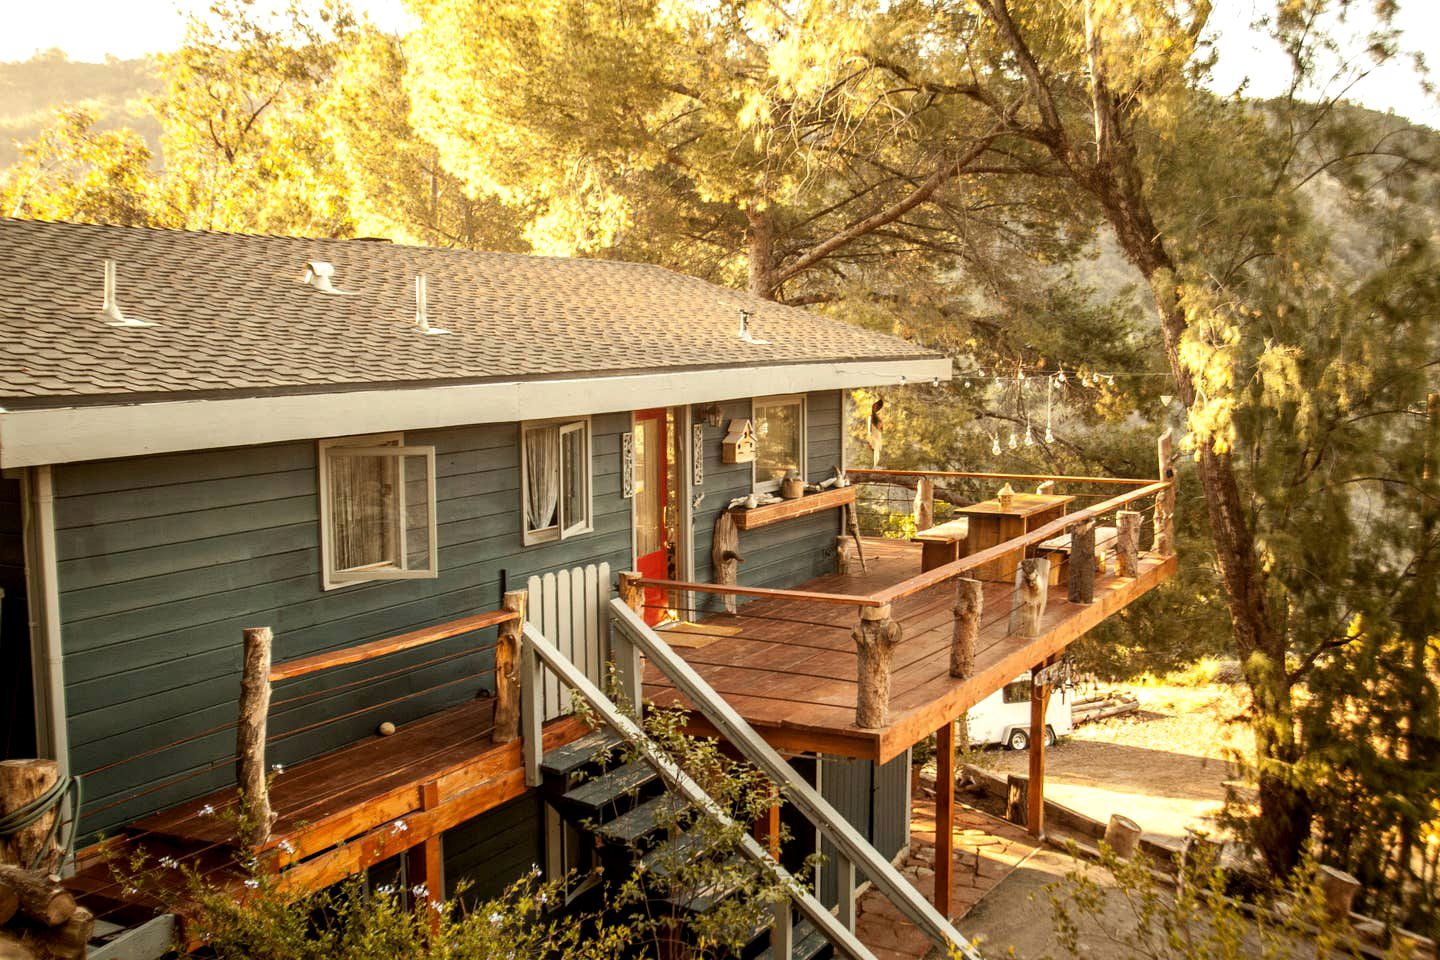 This Topanga cabin is perfect for unforgettable romantic getaways near LA